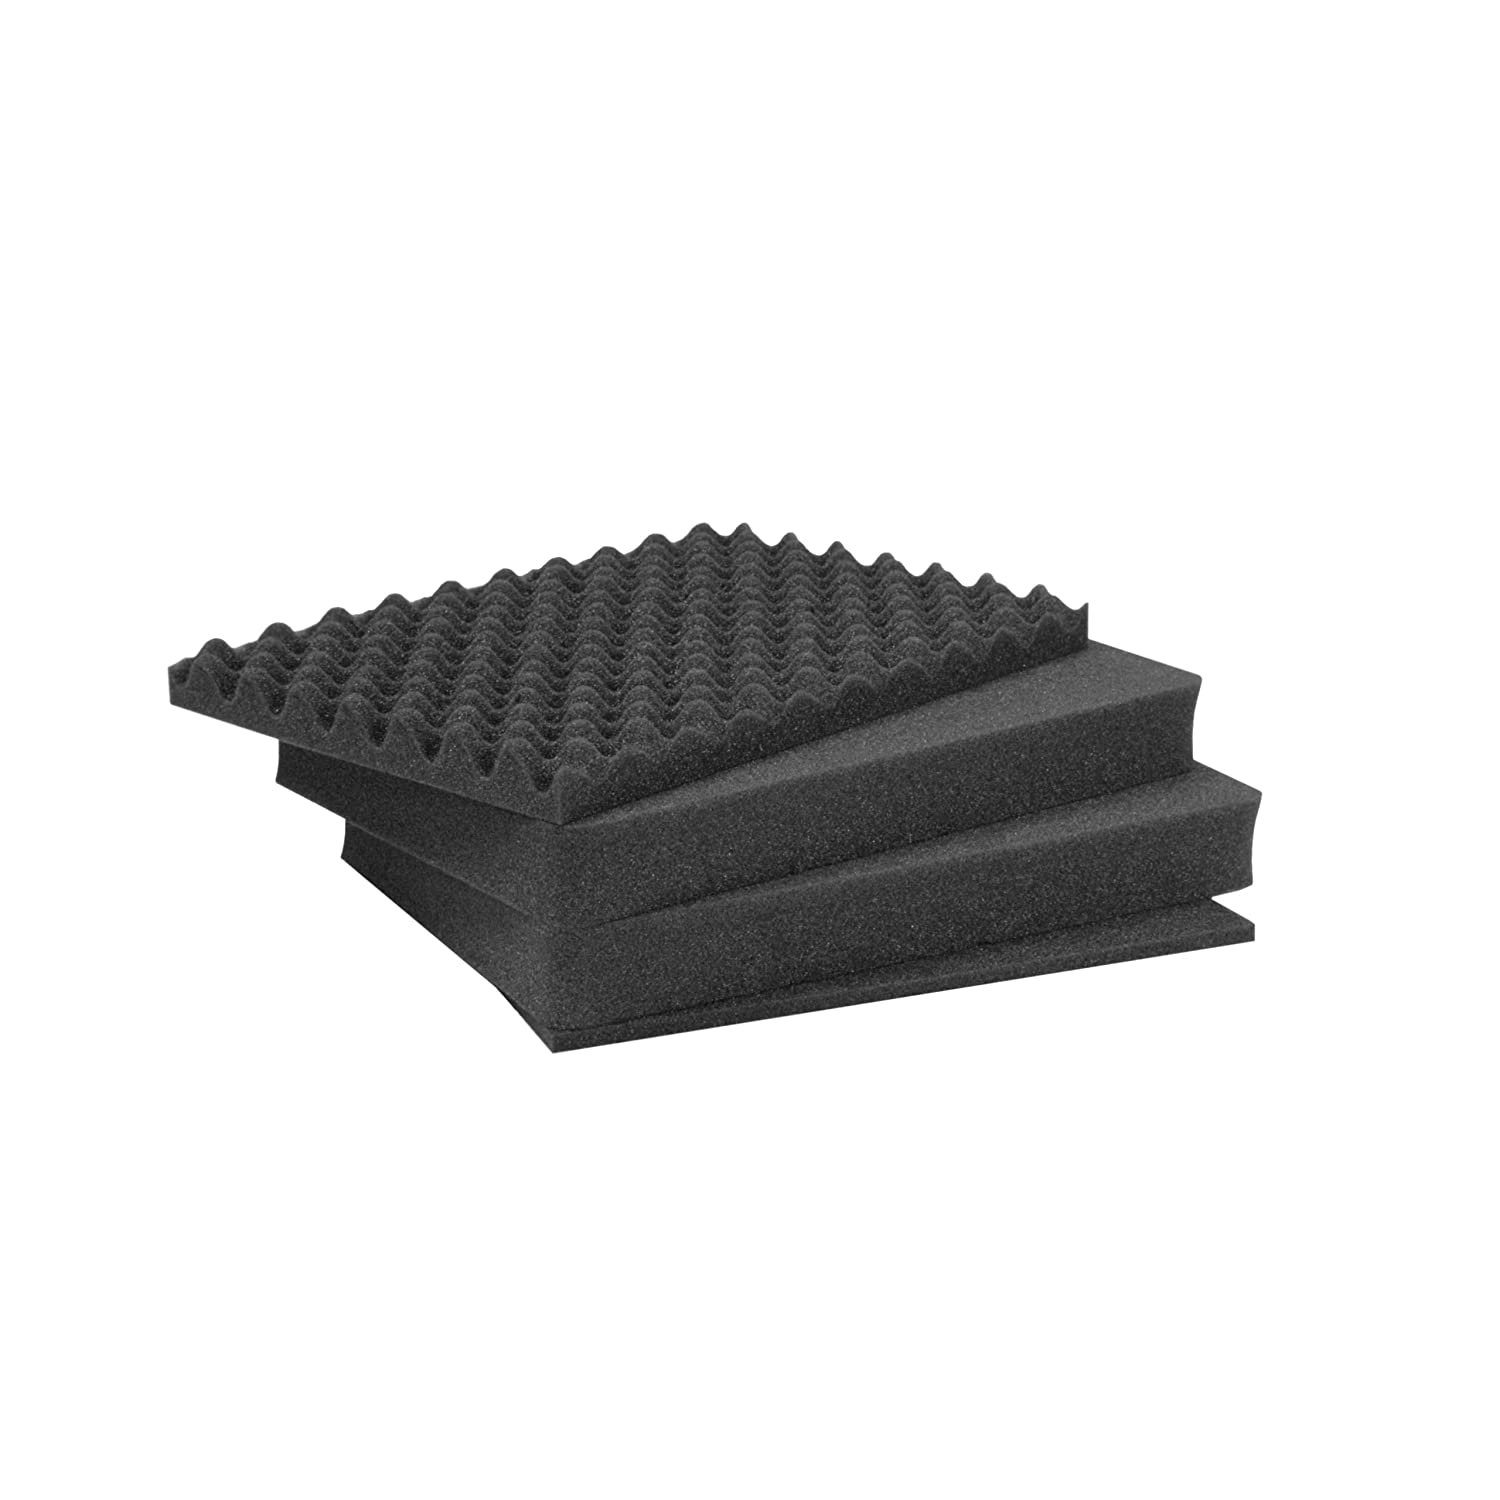 Foam inserts (3 part) for 940 Nanuk Case Plasticase Inc 940-FOAM